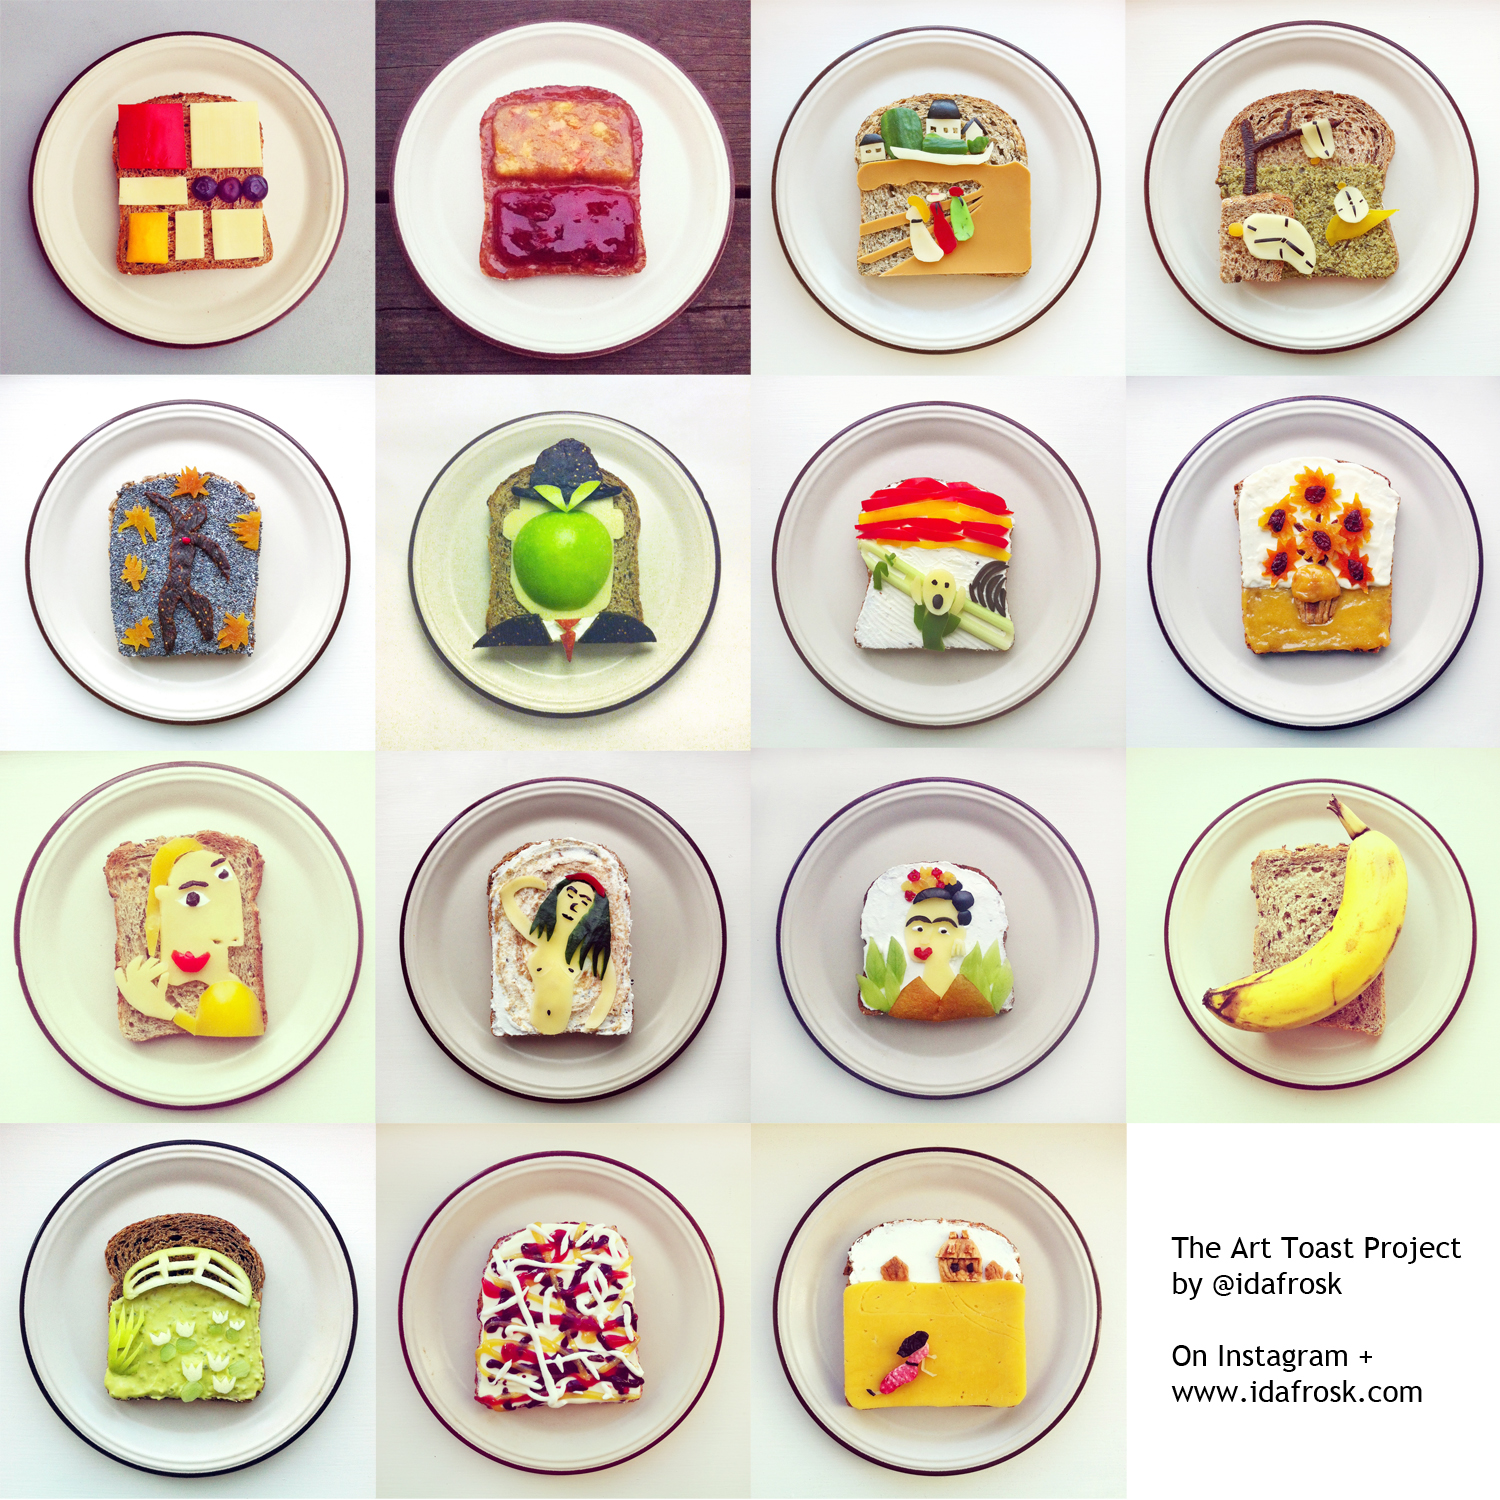 The Art Toast Project by Idafrosk